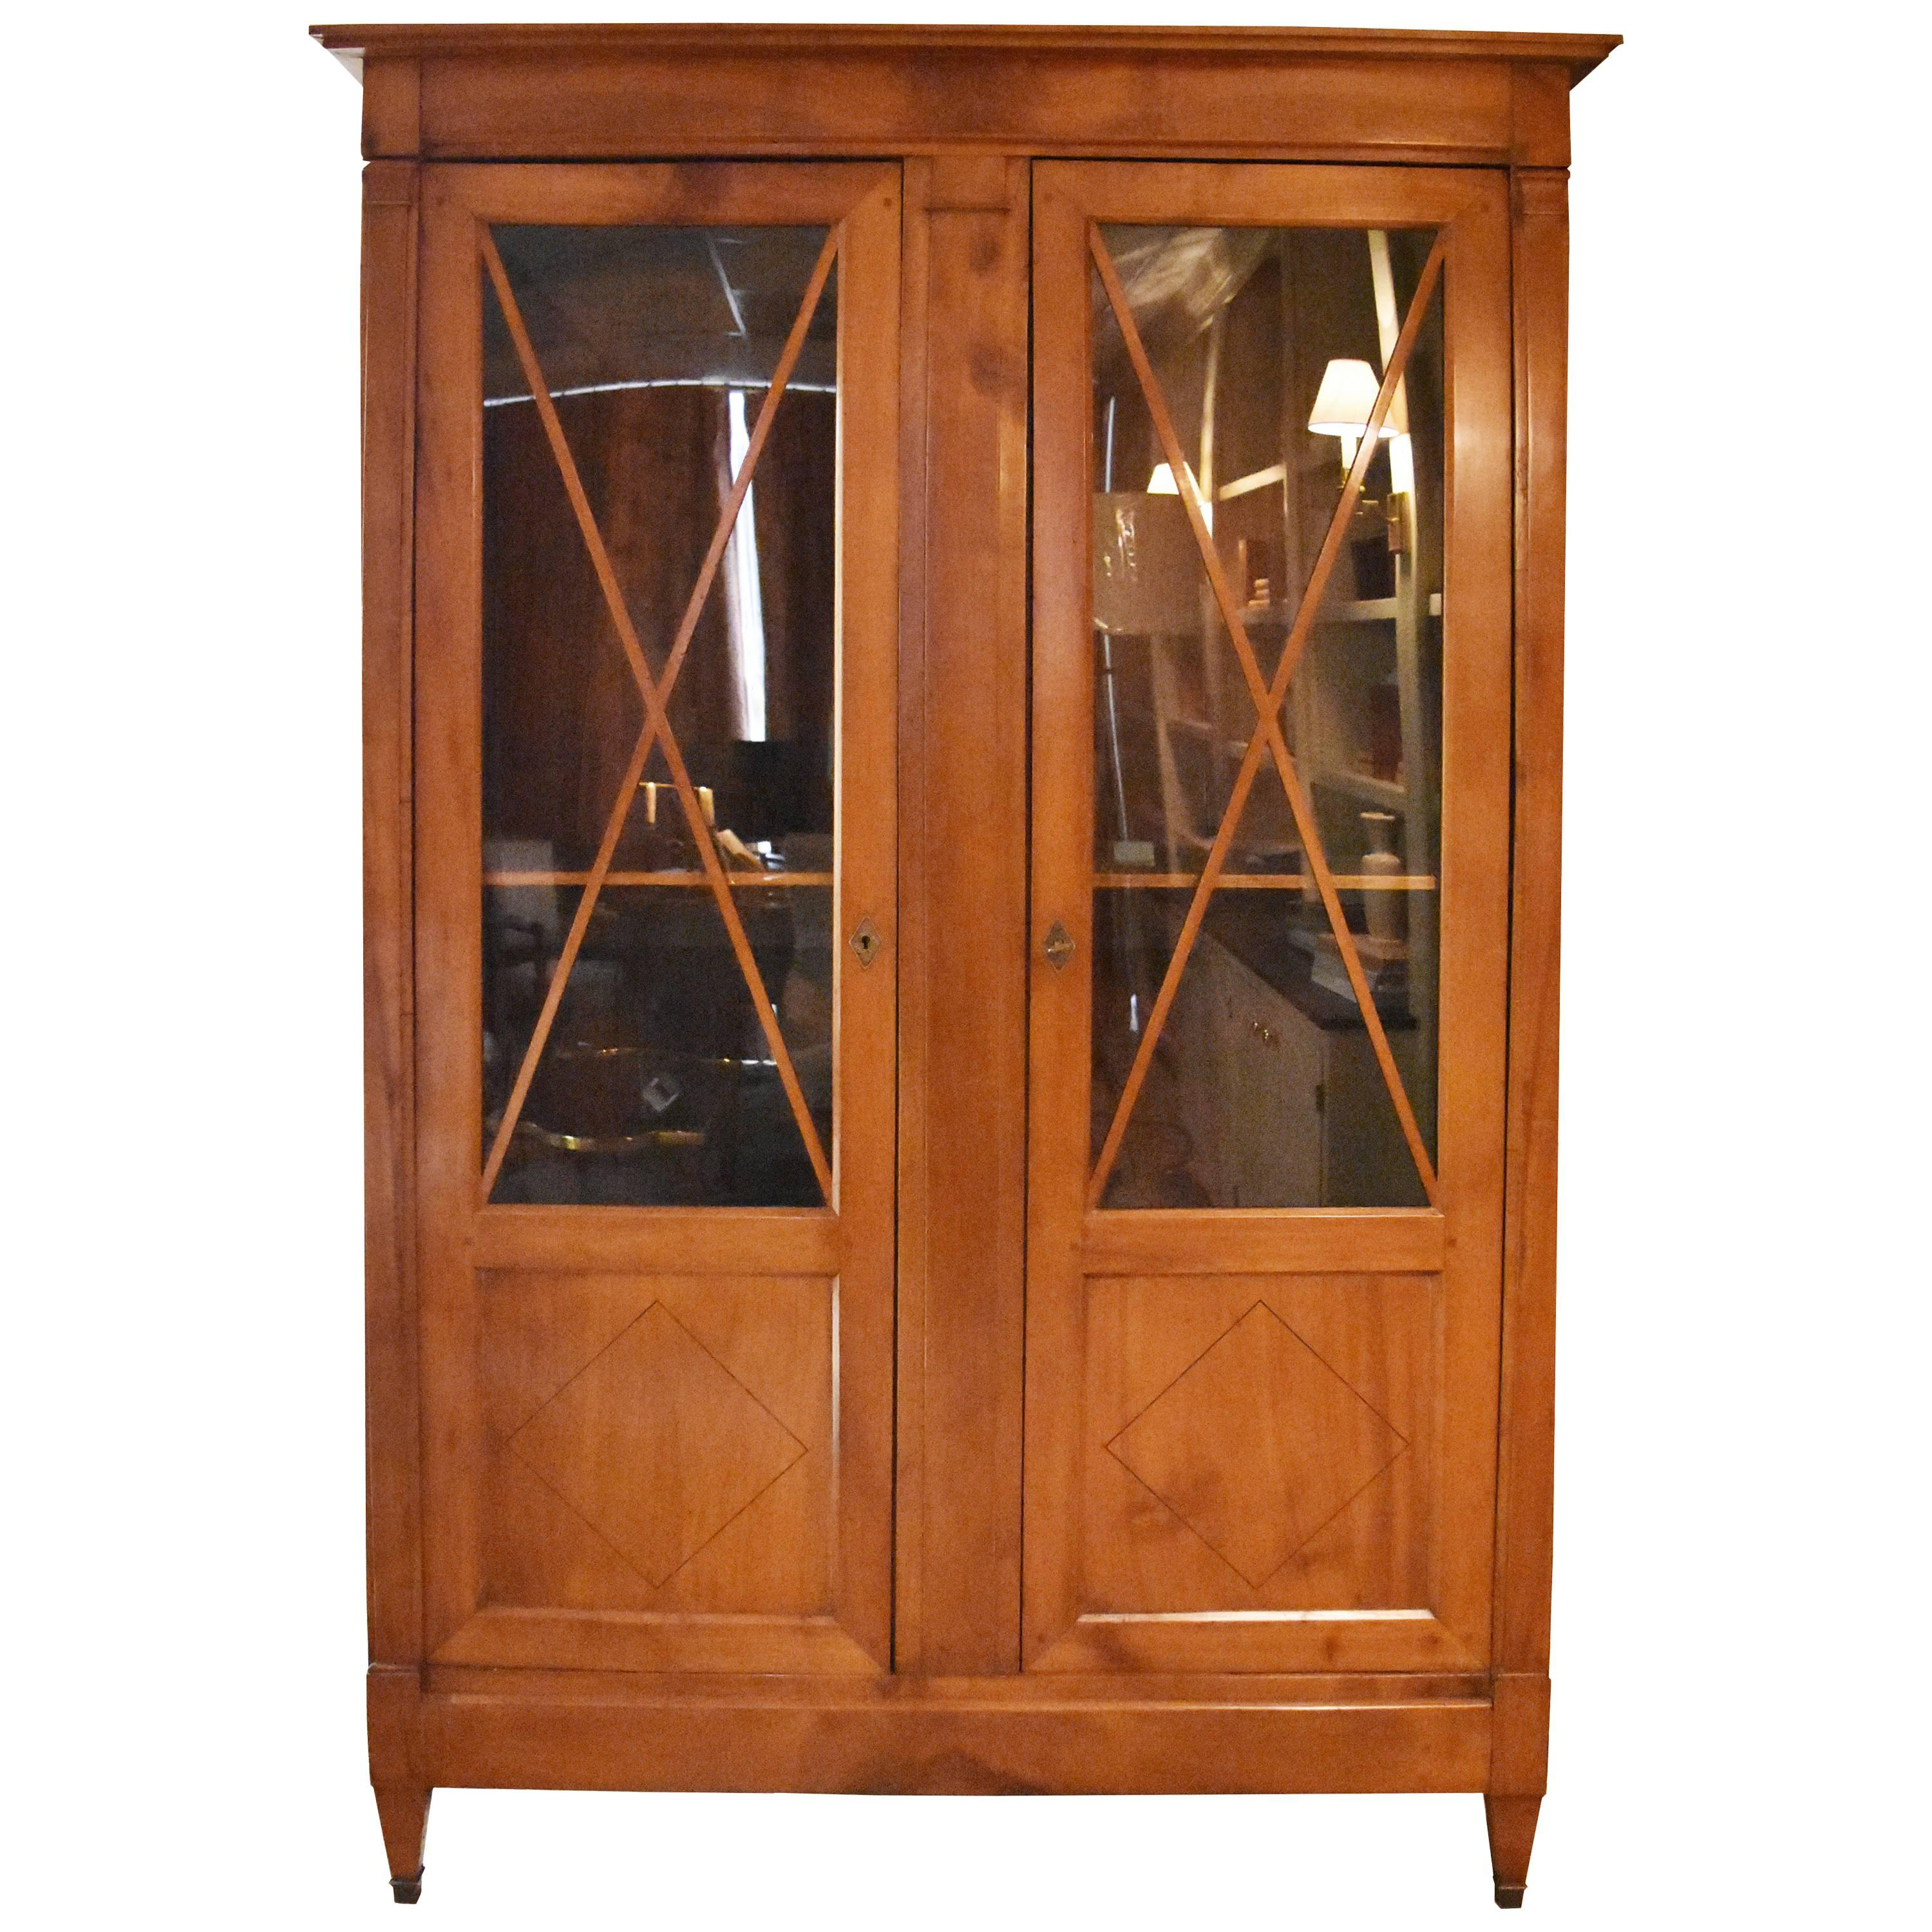 19th century directoire style blonde walnut or bookcase